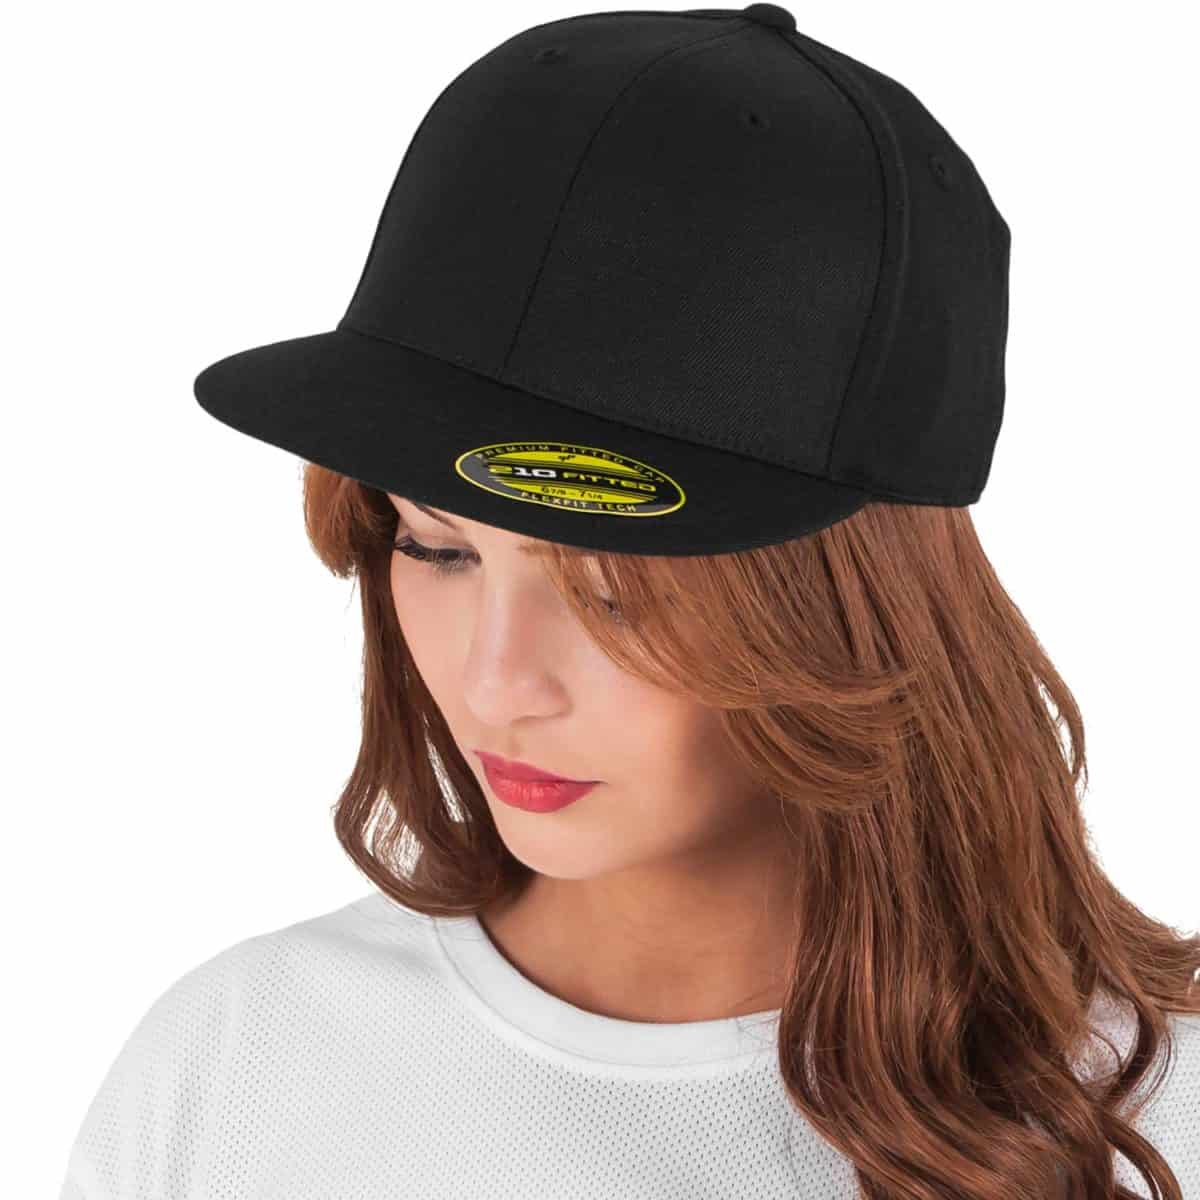 Flexfit FlexfitCaps FFE 6210 Black Model W